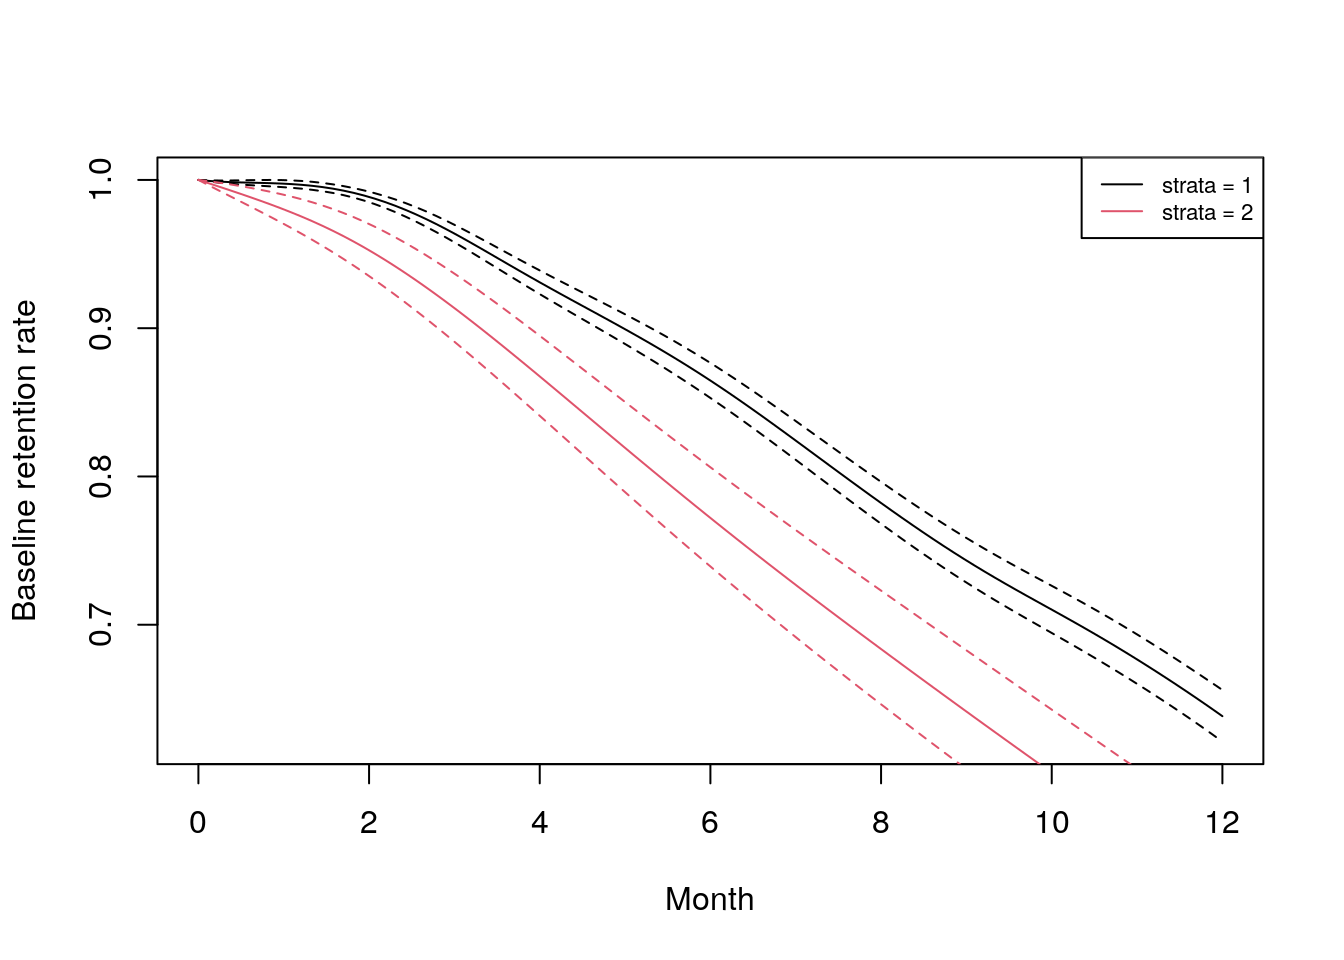 Baseline retention curves for the two sentiment categories in the `job_retention` data set